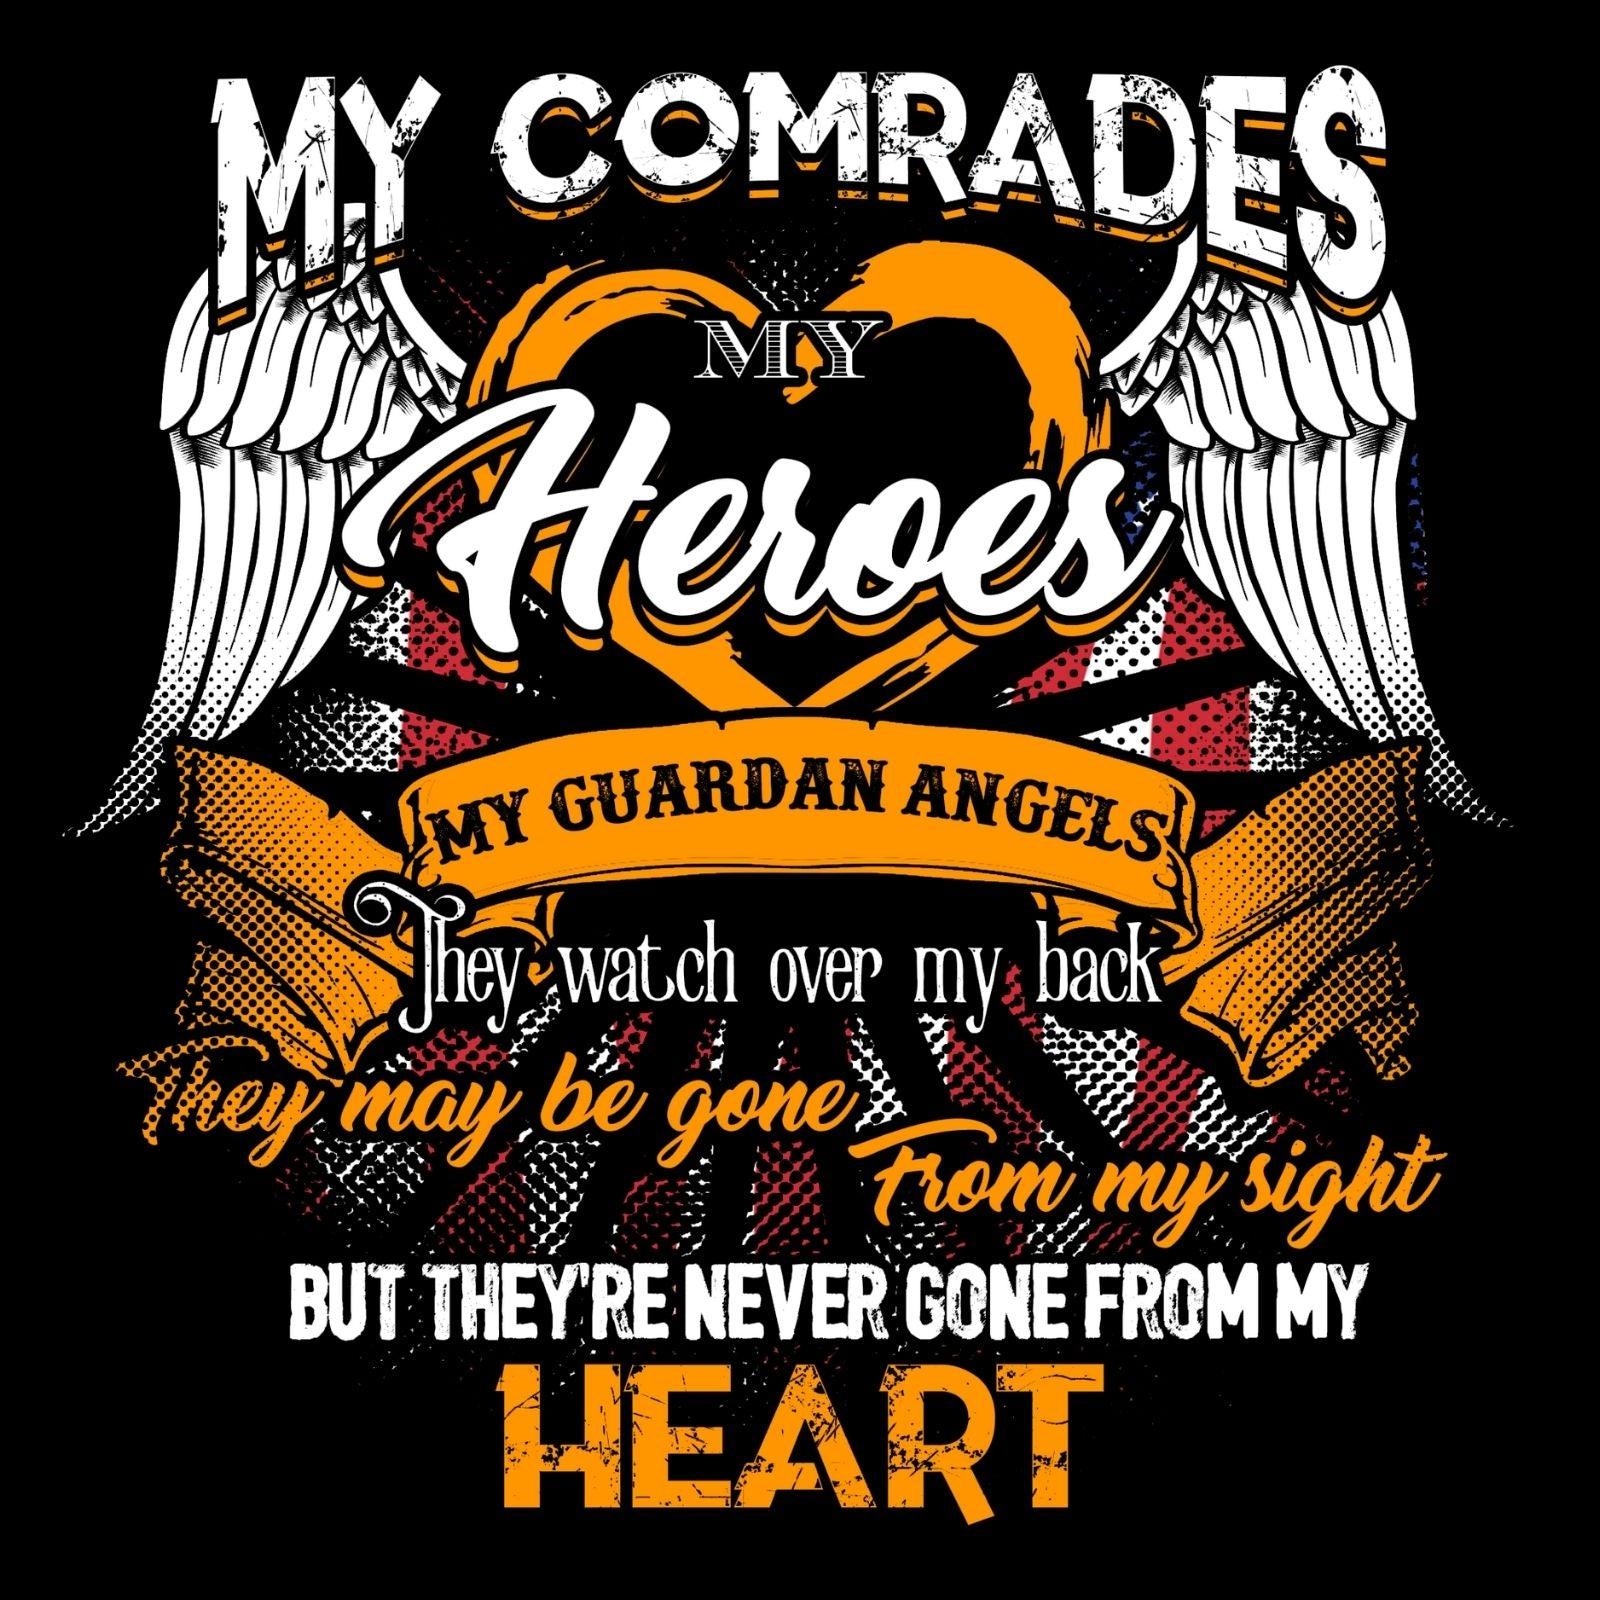 My Comrades My Hero My Guardian Angels They Watch Over My Back They Maybe Gone From My Sight But They Are Never Gone From My Heart - Bastard Graphics